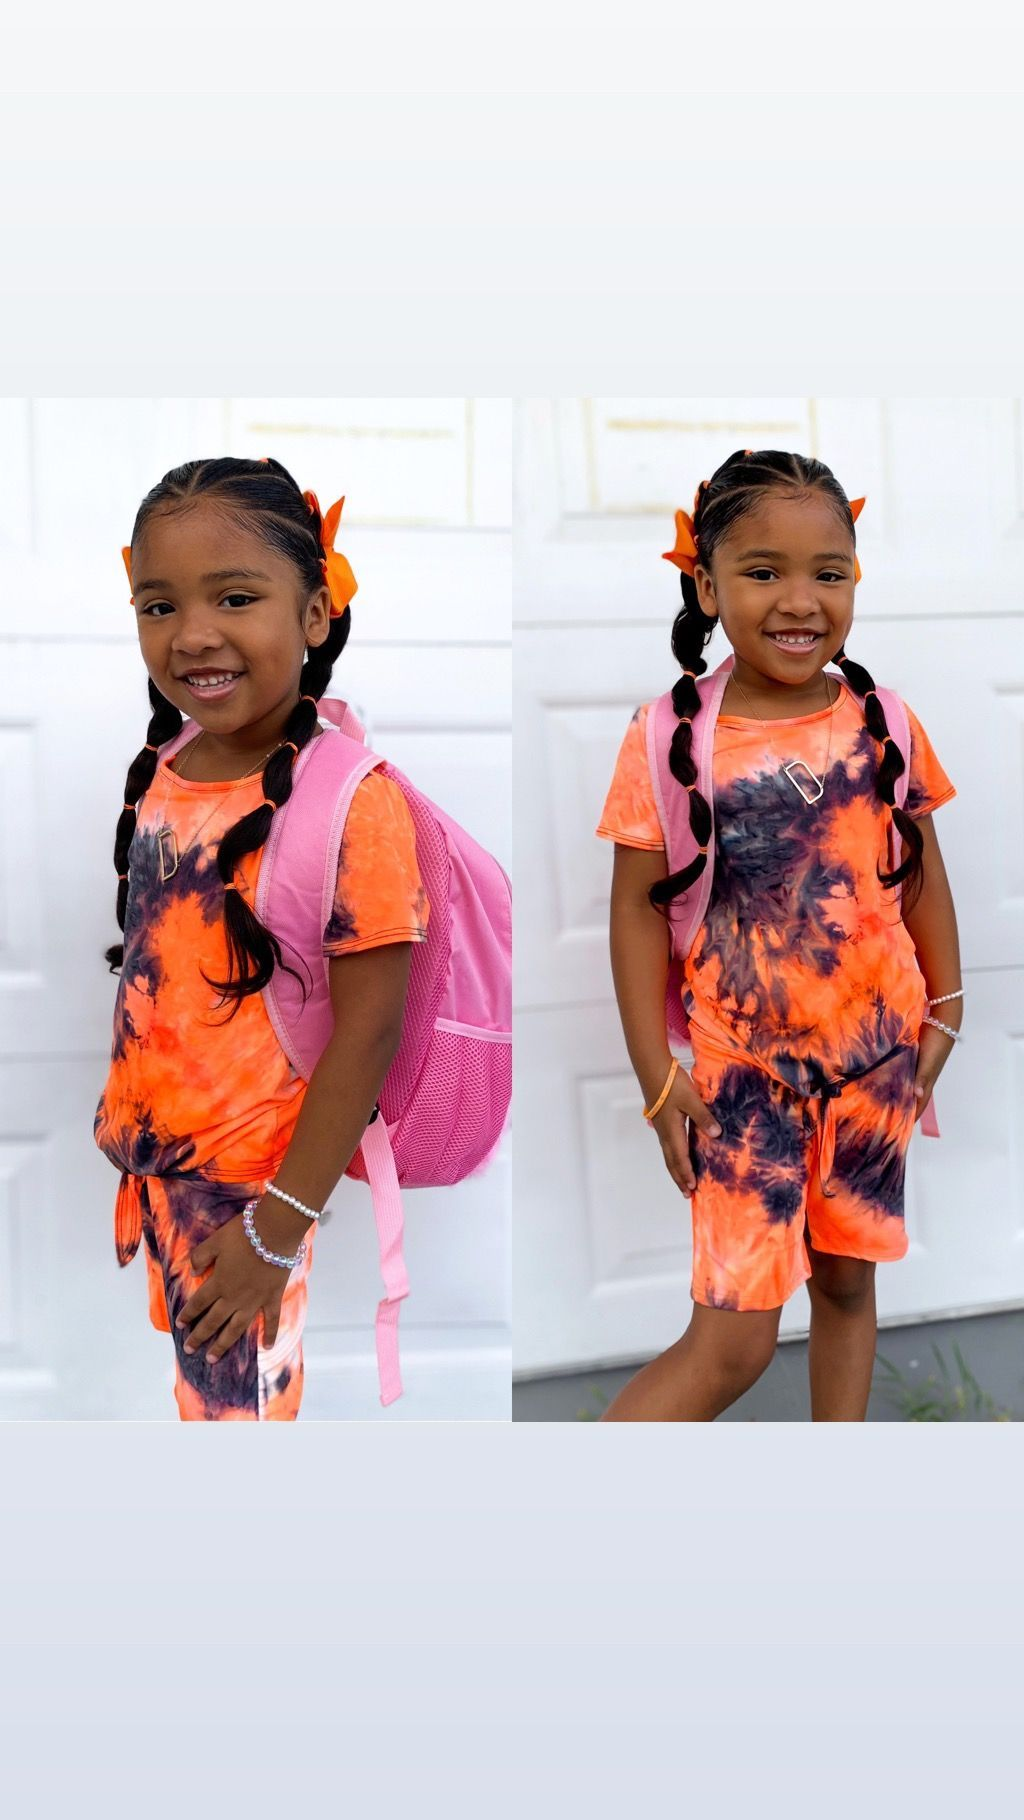 Girls hairstyles  #firstdayofschoolhairstyles Girls hairstyles, protective styles, first day of school, kid's fashion, hair bows, mixed kid, pretty girls, mixed #firstdayofschoolhairstyles